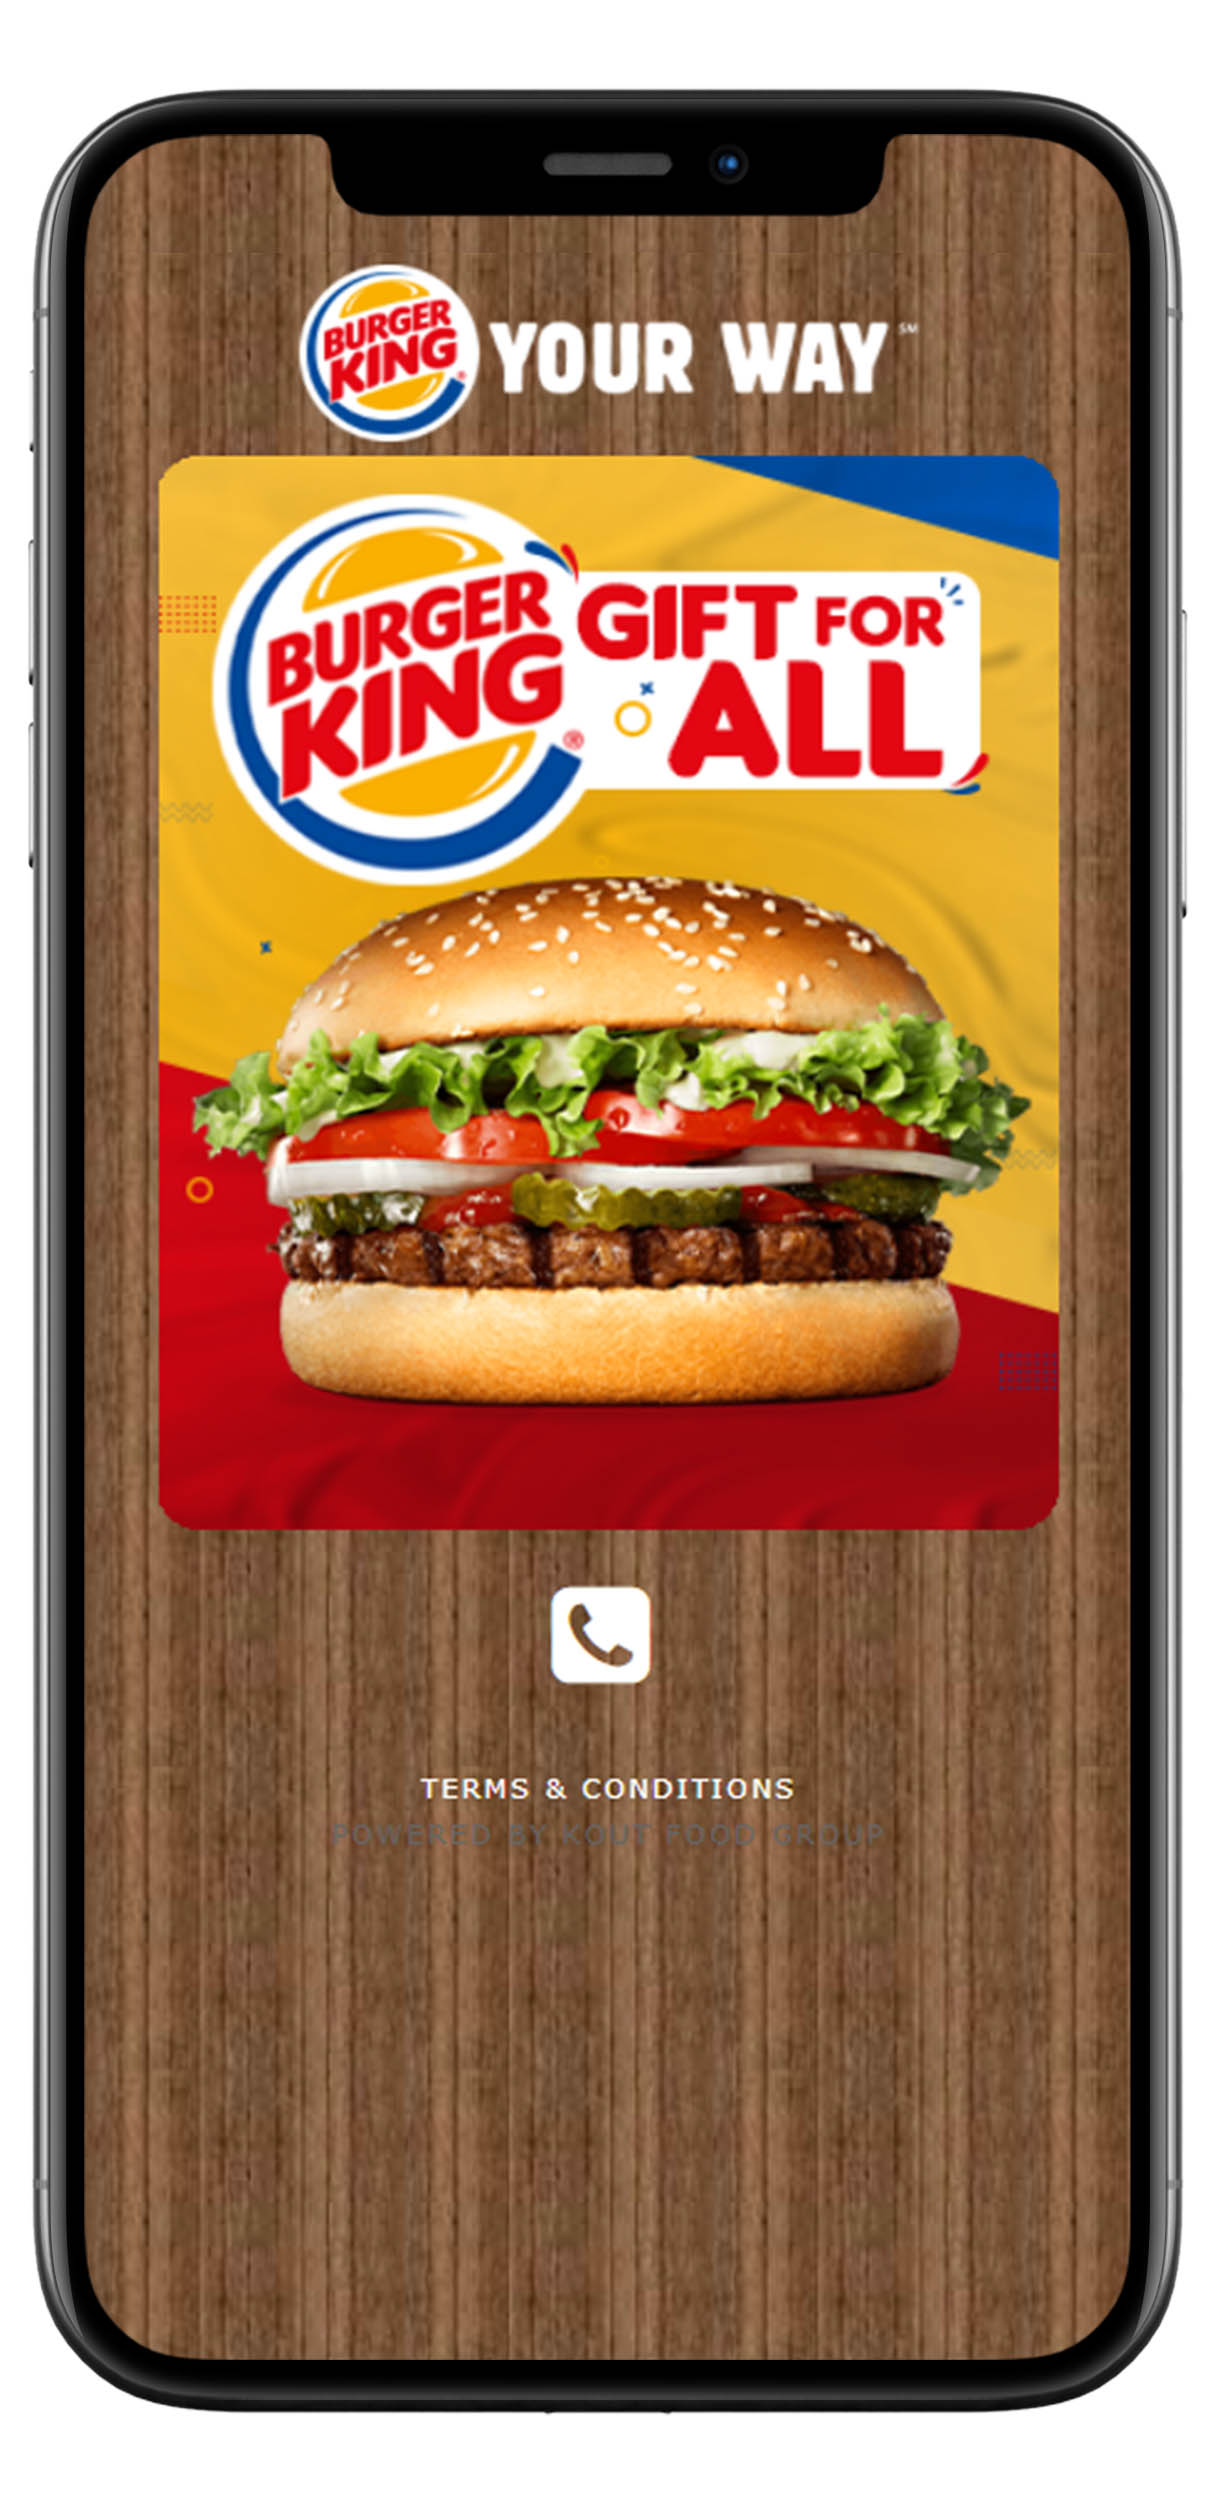 digitale fast-food coupons use case image